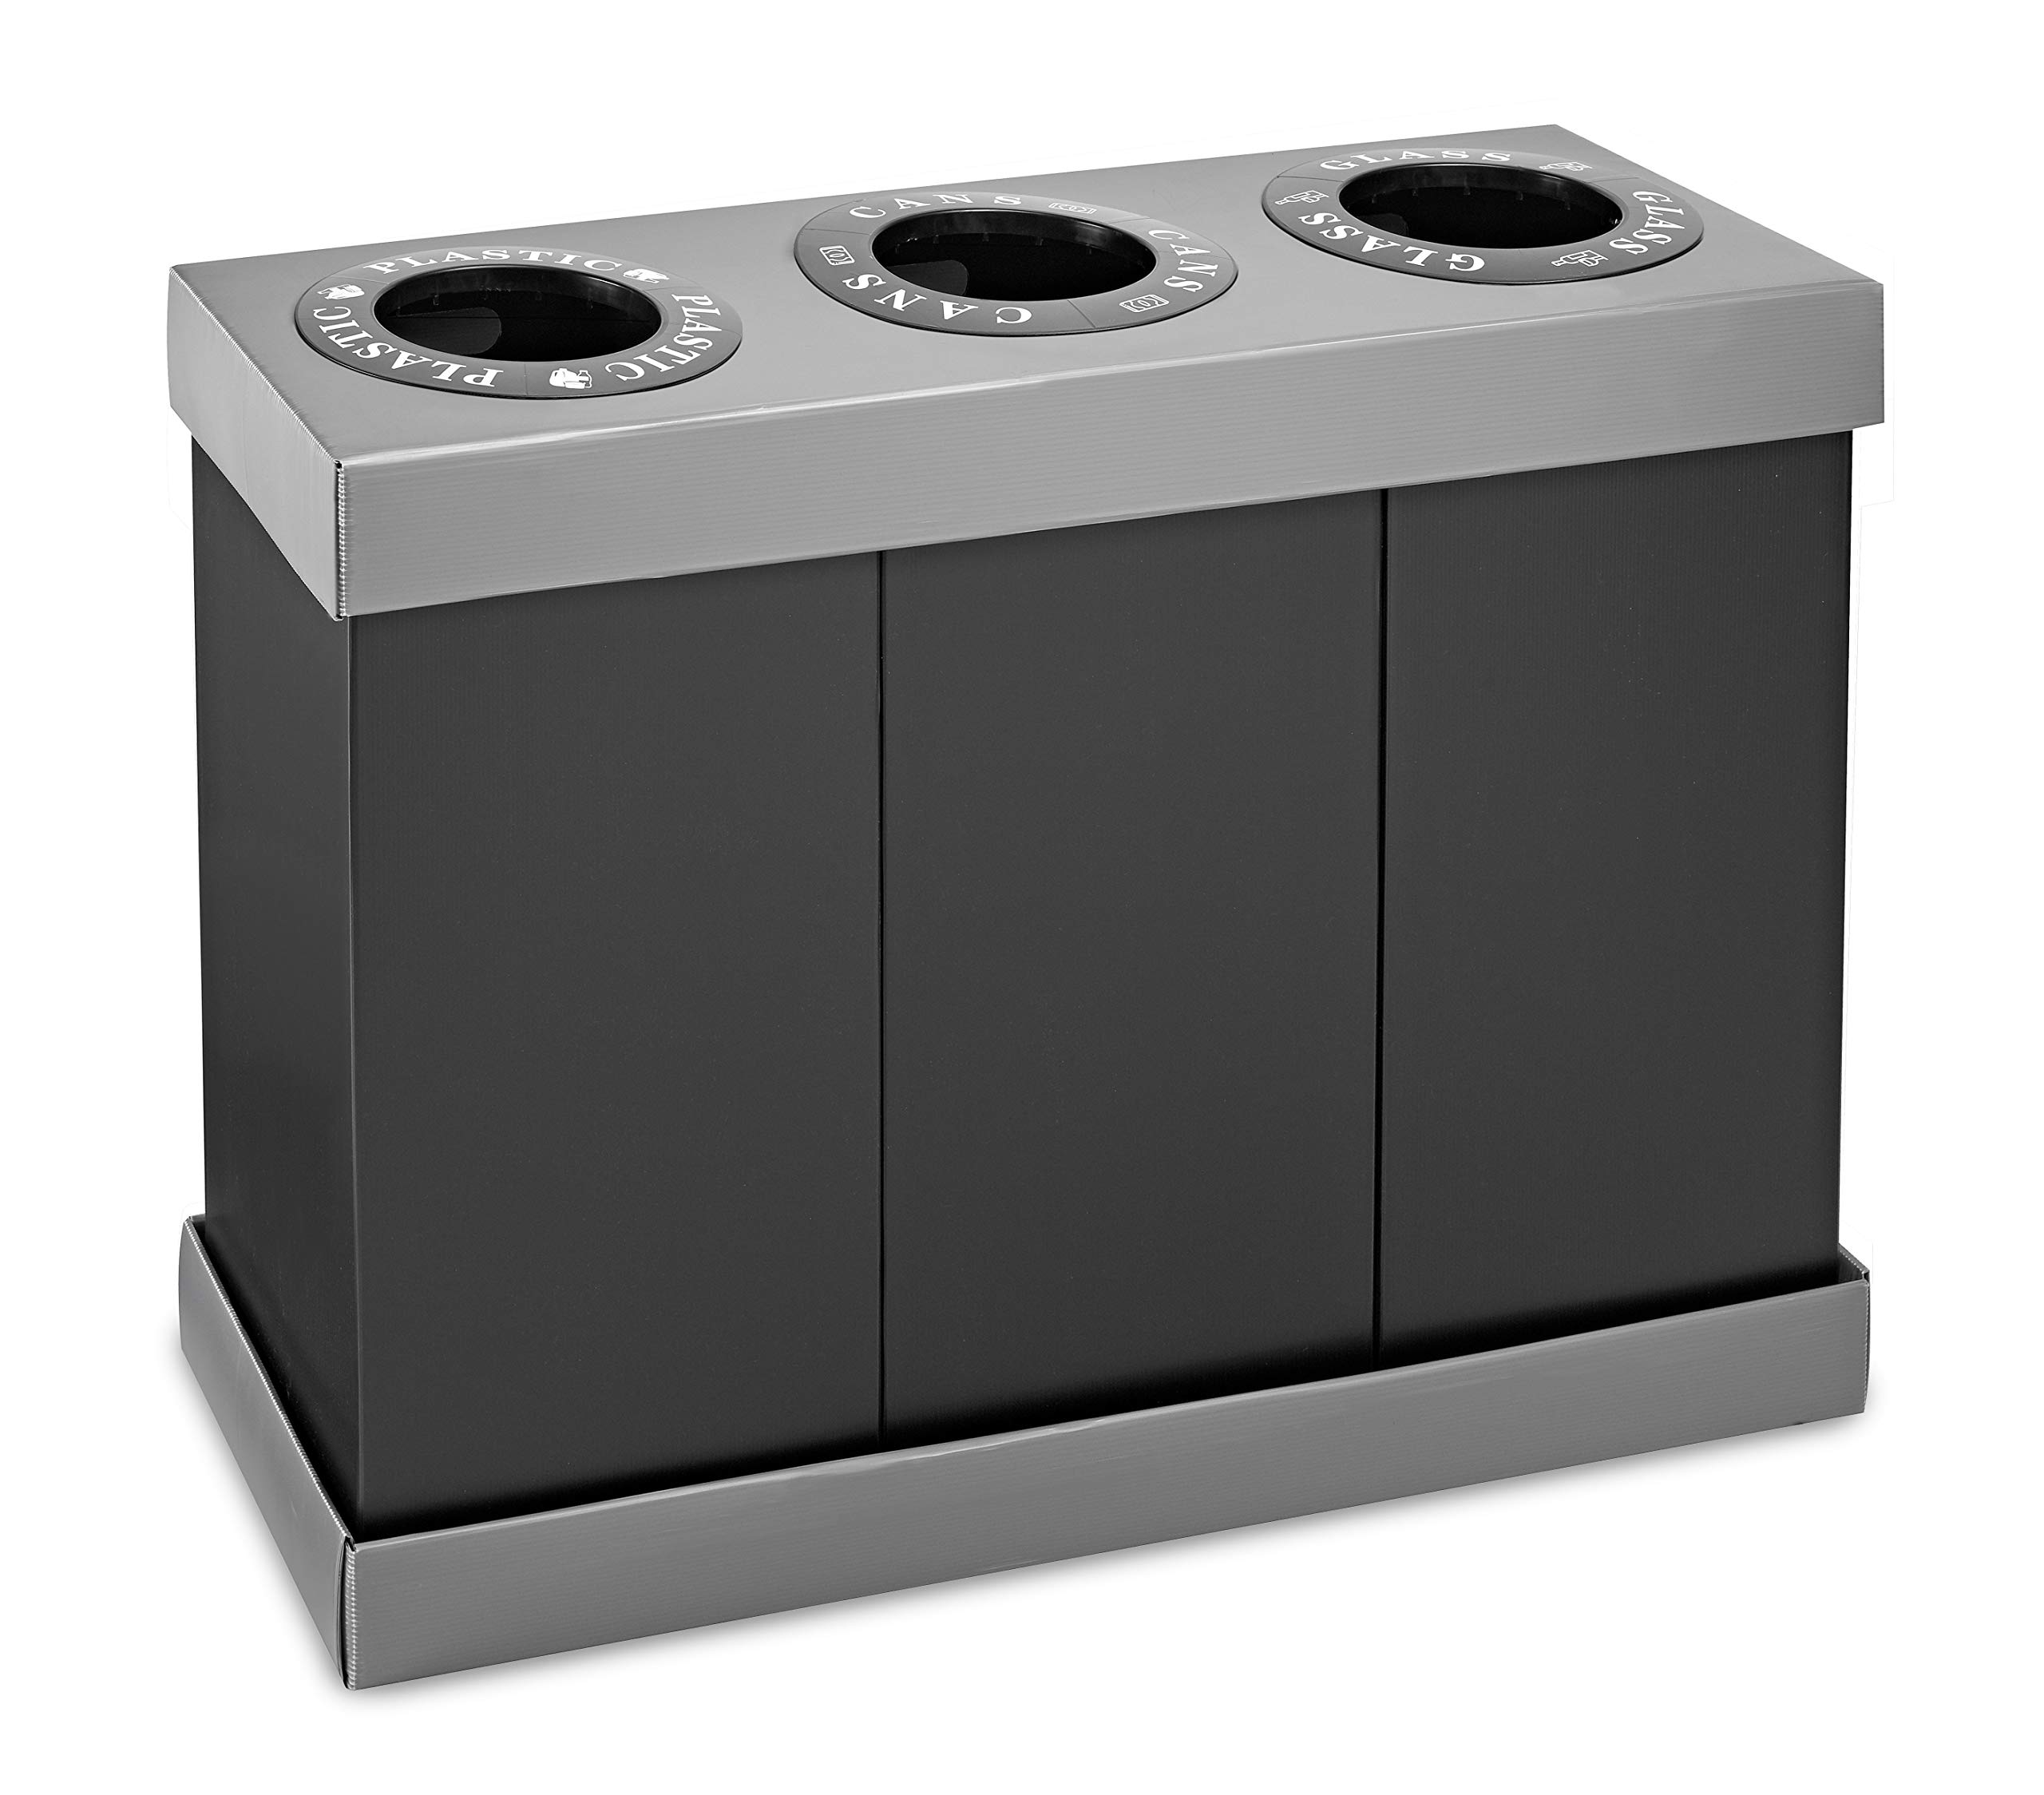 Alpine Industries Recycling Center 28 Gallons - Durable Plastic Waste/Trash Organizer Ideal for Kitchen Office Hospital Commercial Use (3 Bins)